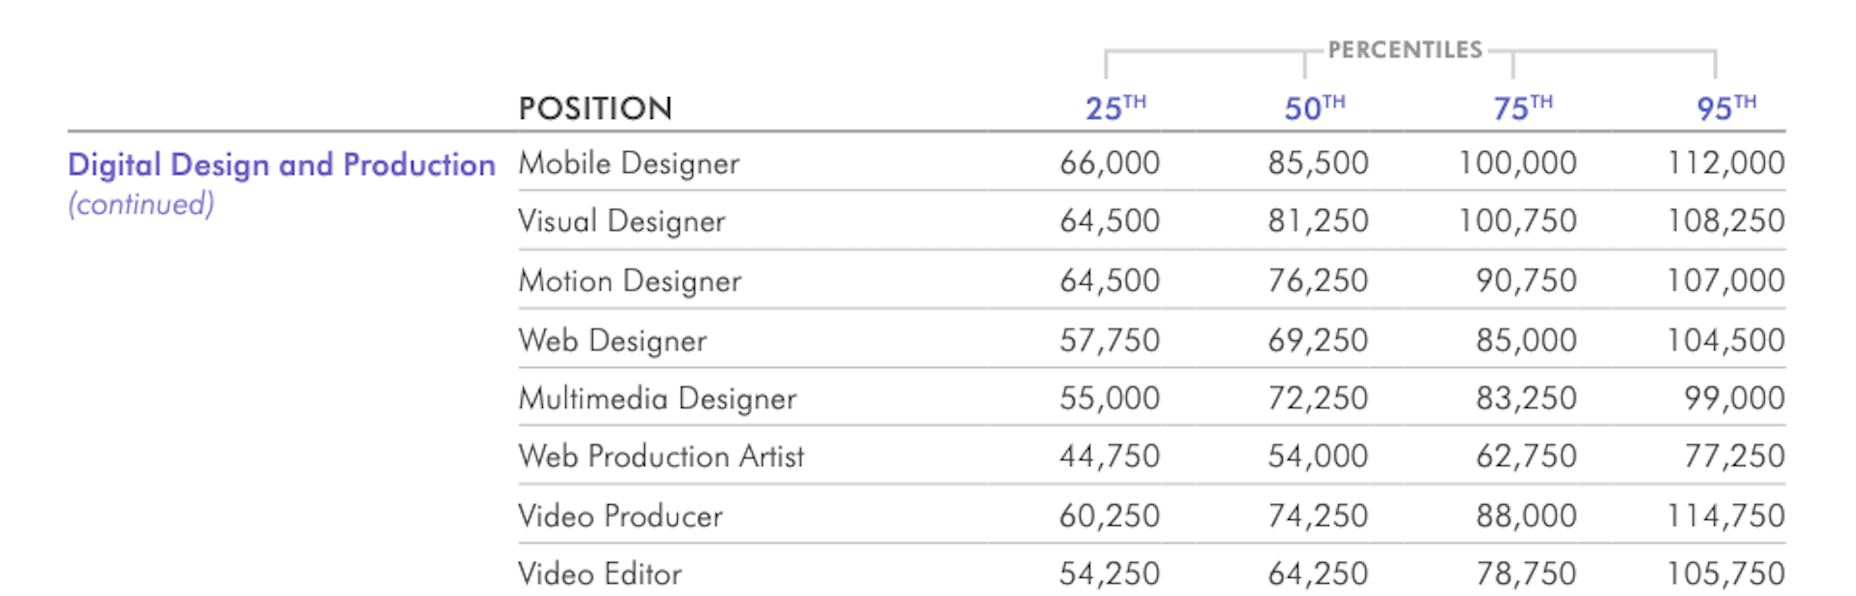 The average salaries for web designers in the U.S., according to Salary Guide